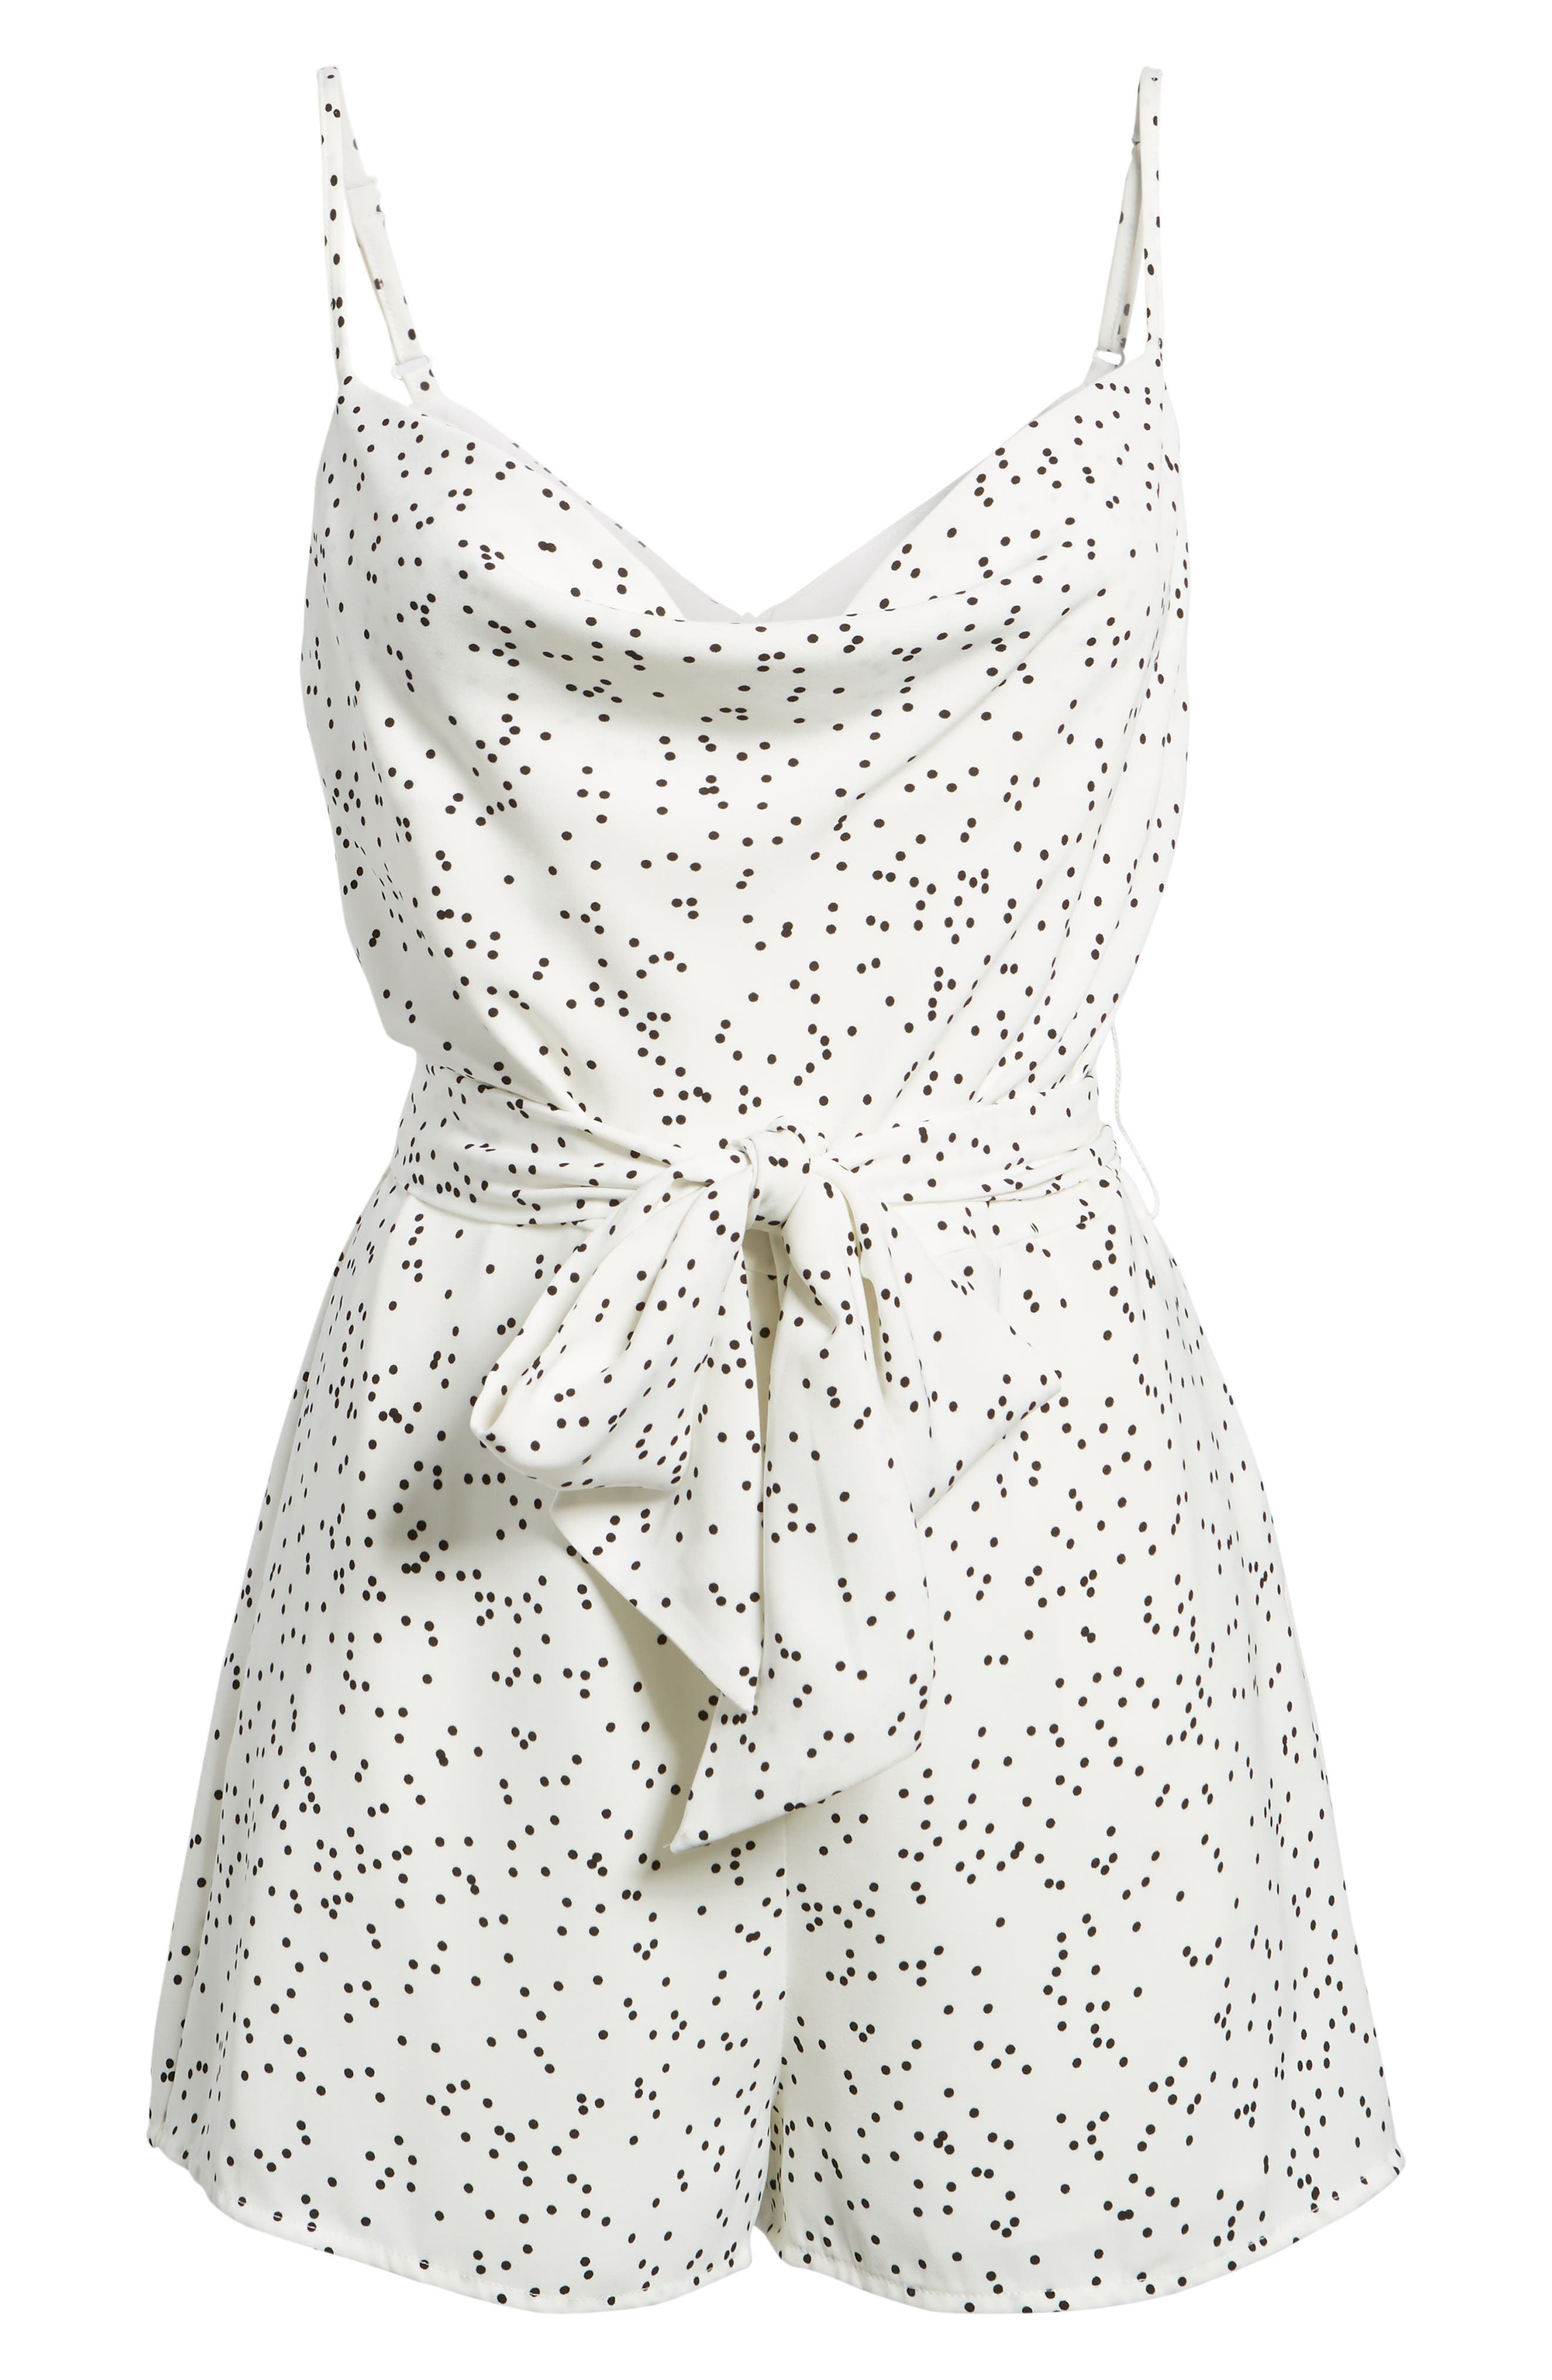 Embrace Me Romper,                             Alternate thumbnail 6, color,                             White W Black Spot